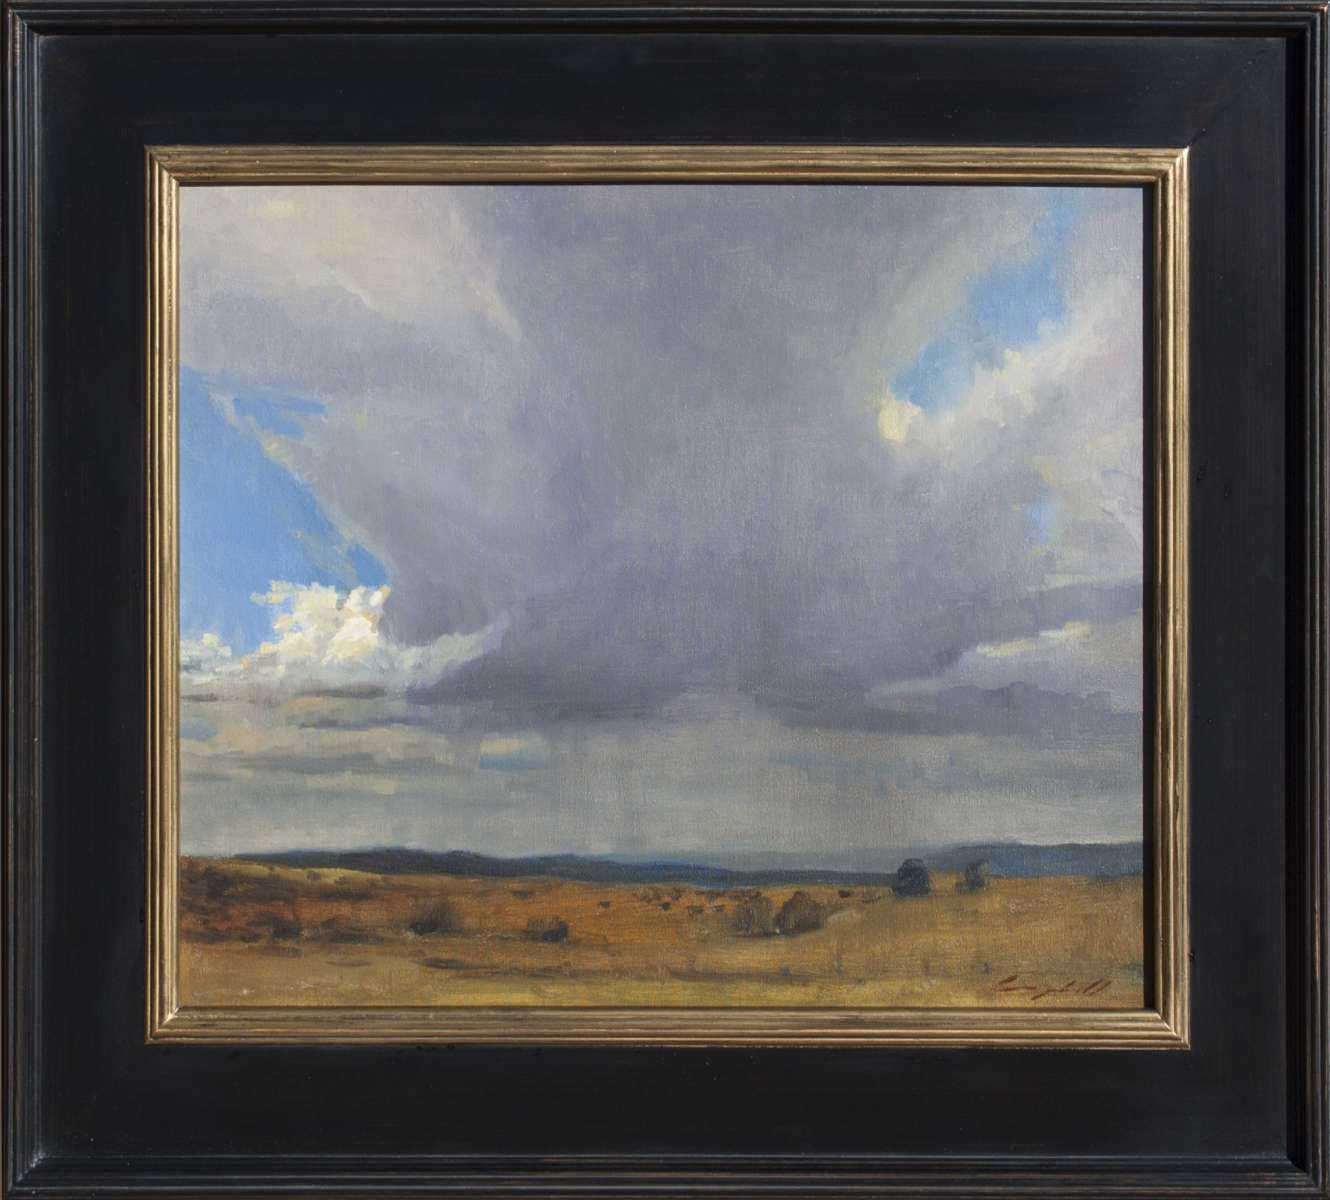 New Mexico Rain by Peter Campbell